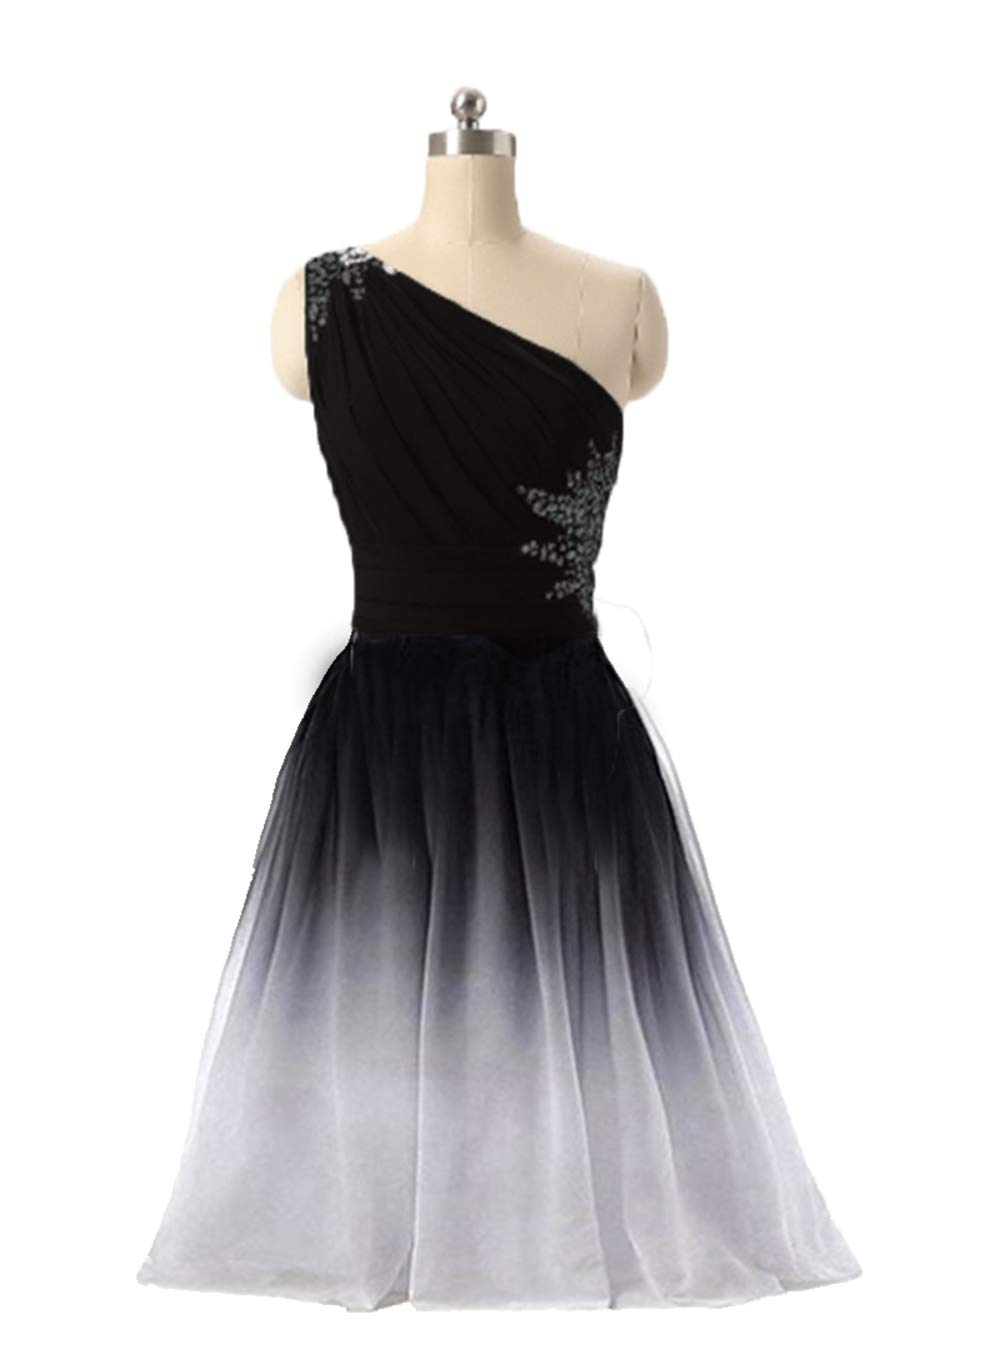 Fwvr Ombre Short Prom Dresses For Juniors Beaded Gradient Homecoming Party Dress 2020,Buy Wedding Dresses Online India